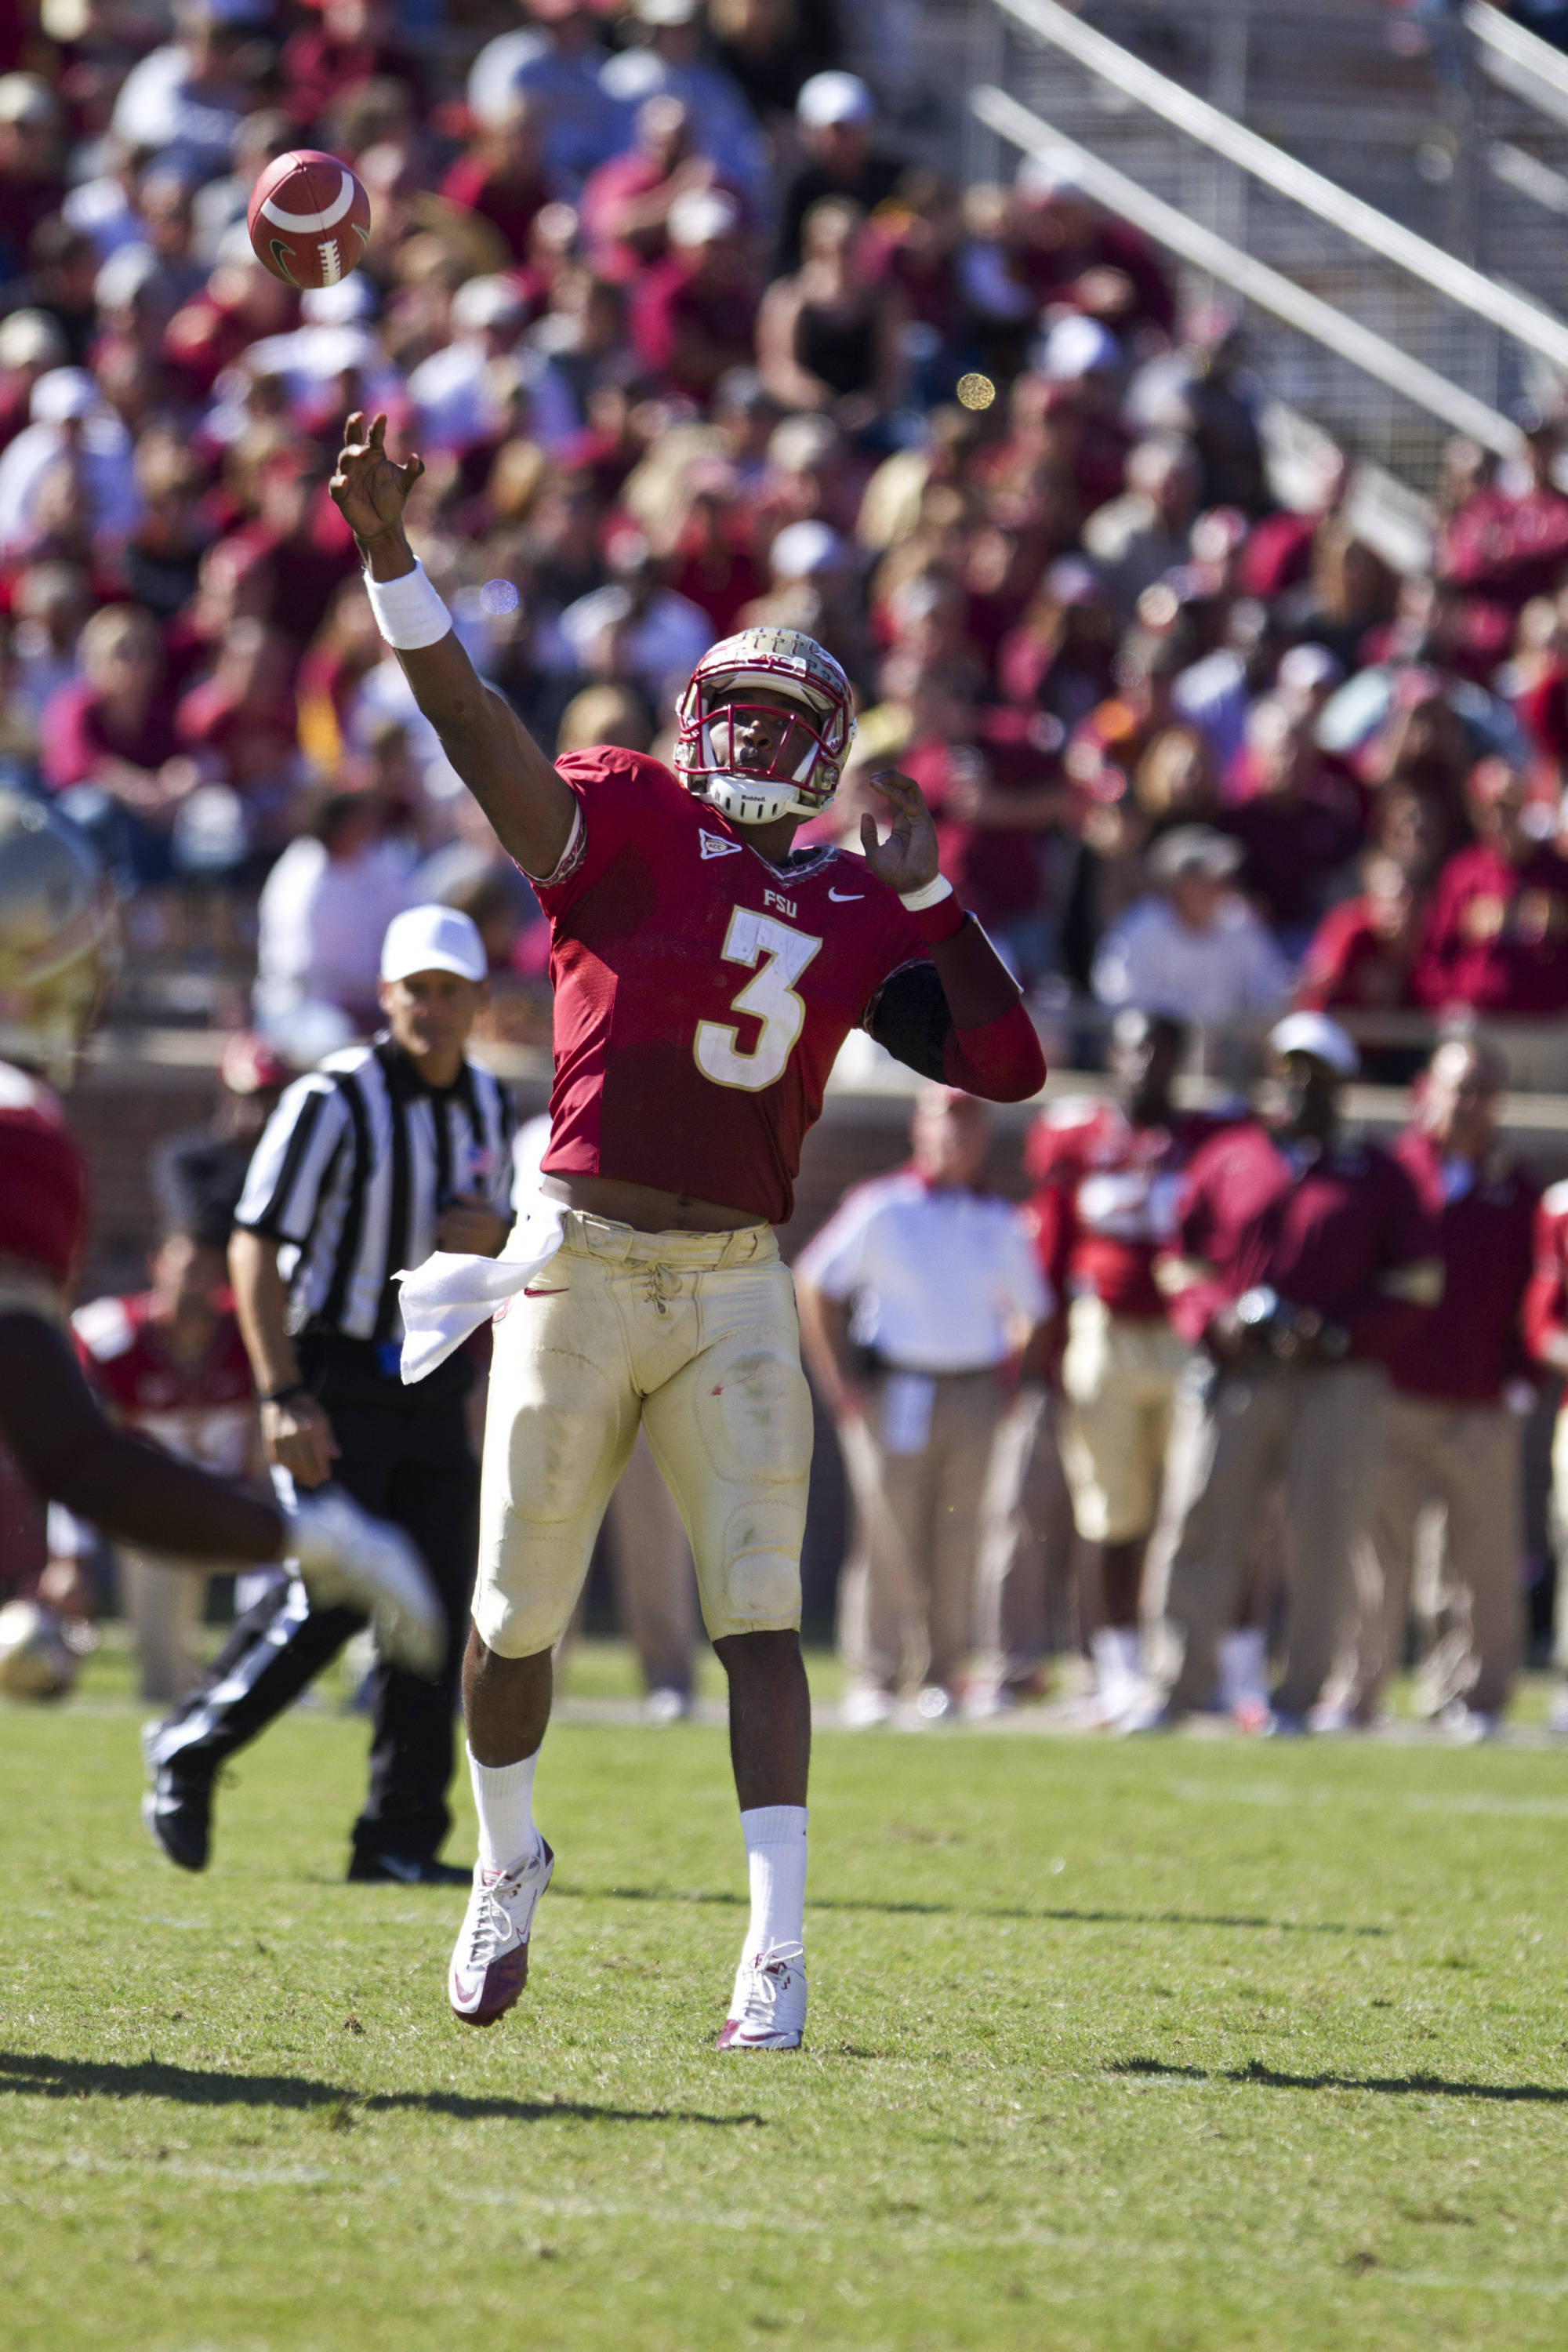 EJ Manuel (3) makes a pass during the football game against NC State on October 29, 2011.